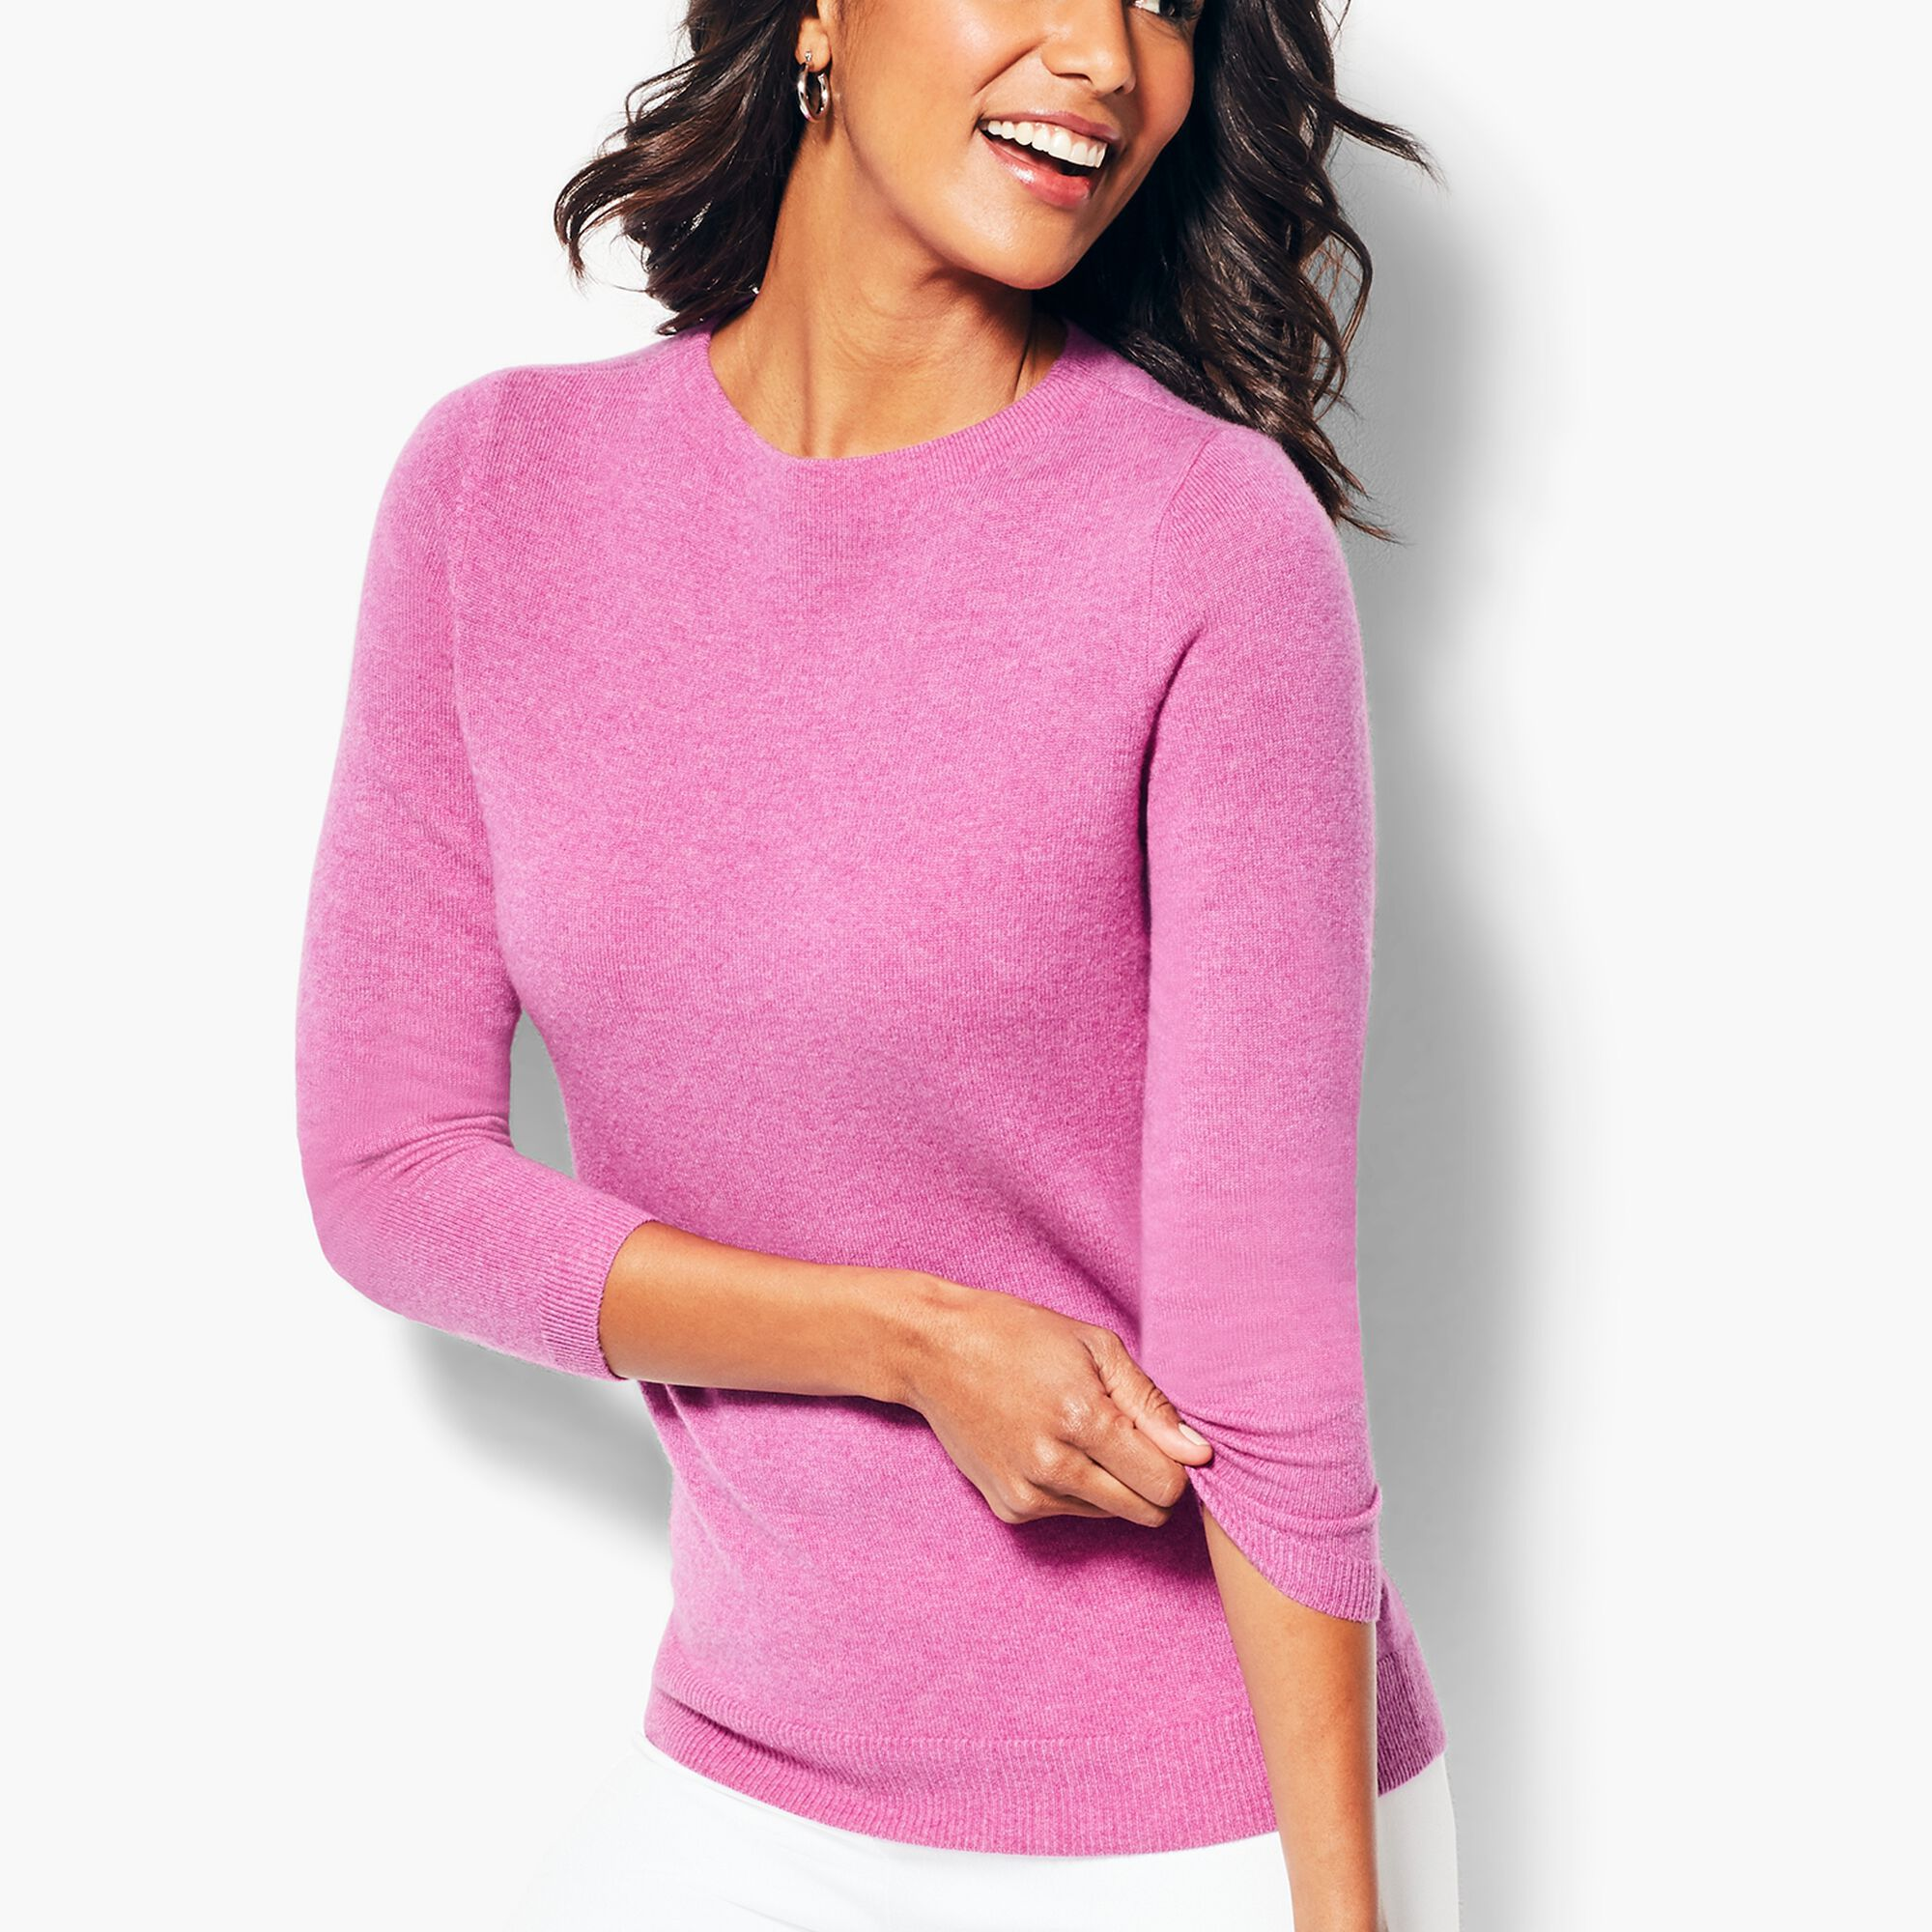 ac4f36ae305 Audrey Cashmere Sweater - Solid Opens a New Window.